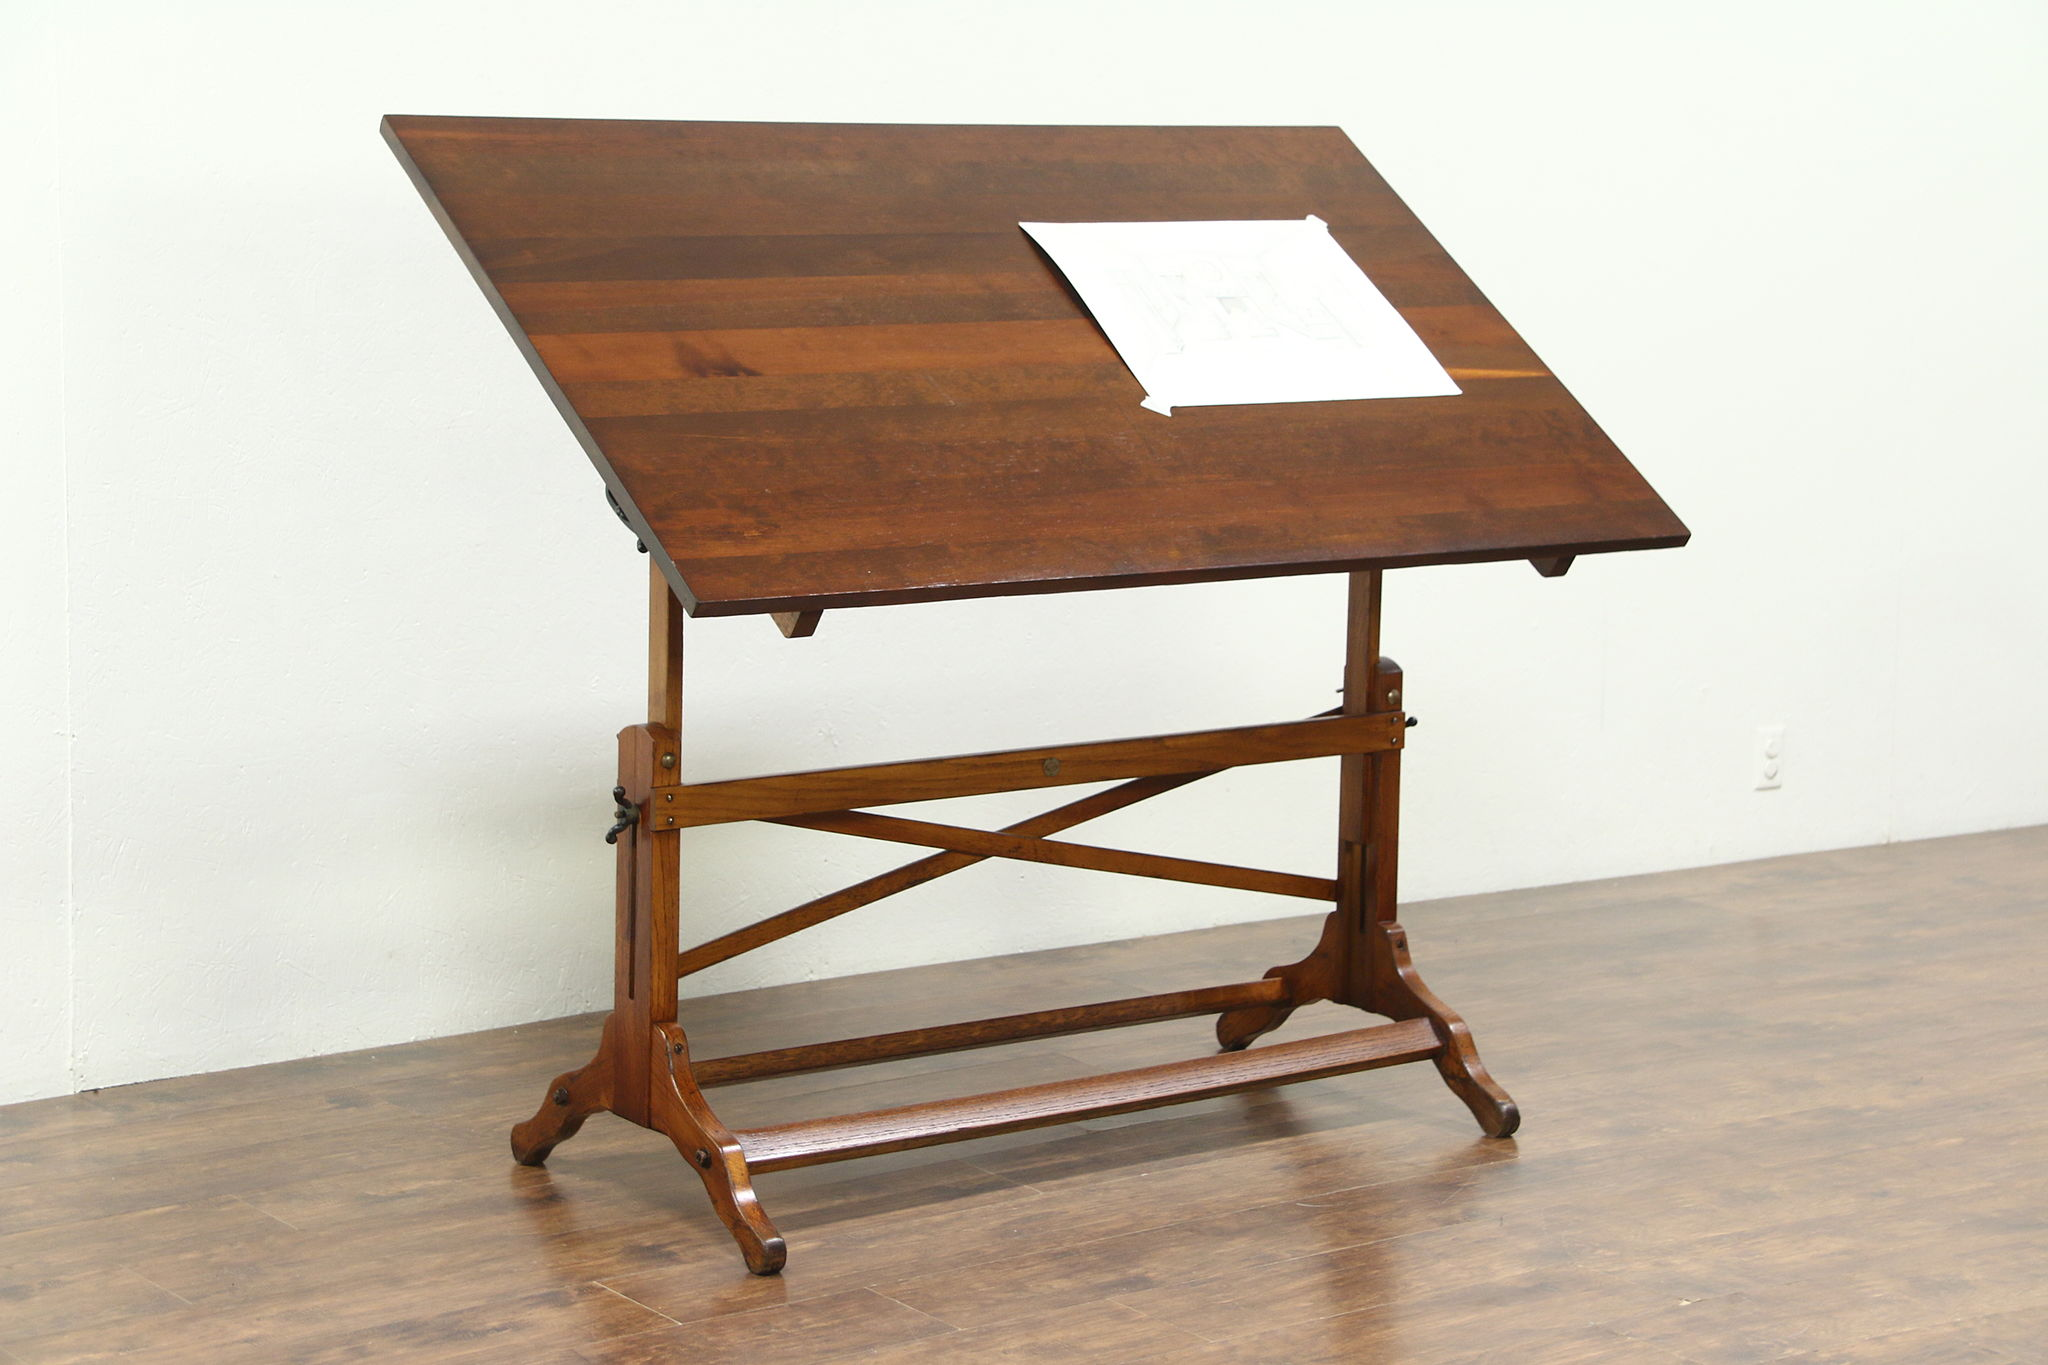 Sold Architect Drawing Table Or Artist Desk Oak Pine Antique Wine Table Post Harp Gallery Antiques Furniture